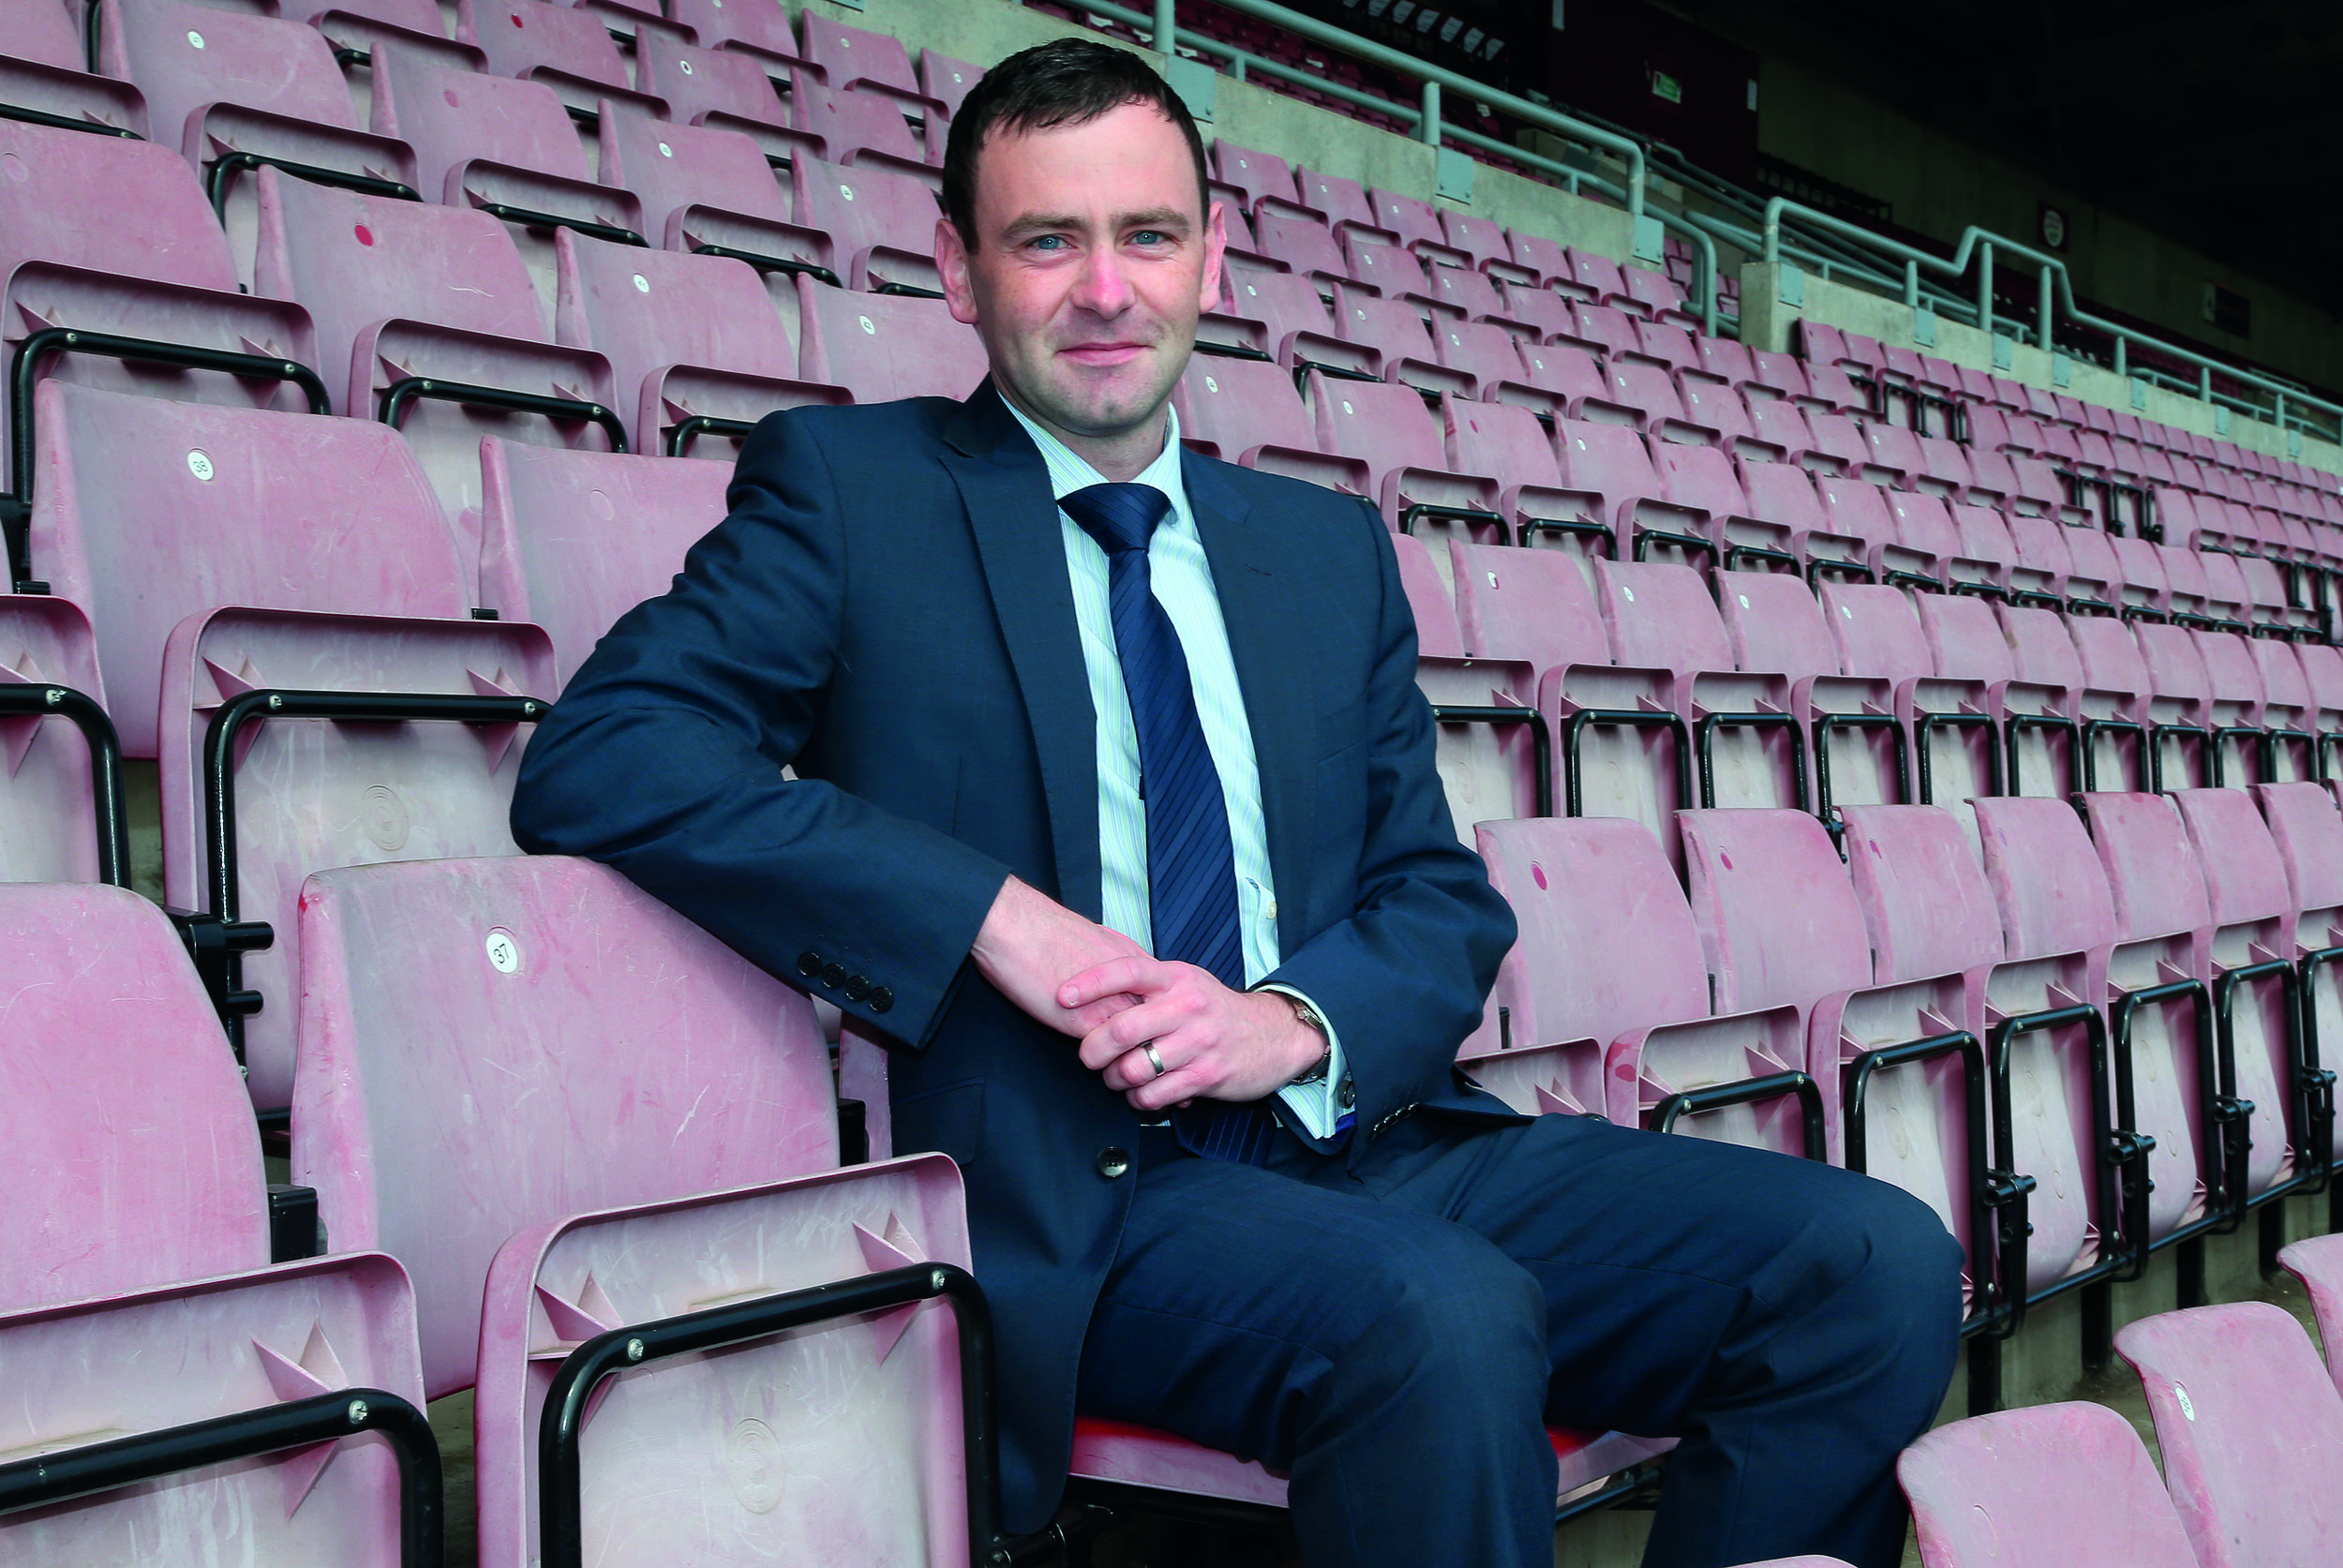 James Whiting    Trustee   I have been a trustee of Northampton Town FC Community Trust since early 2018 however due to my role as Chief Executive of Northampton Town Football Club I have been actively involved in the community programme for several years. It is a pleasure for me to sit on the board of trustees and provide a close link between the club and the community programme. Football clubs sit at the very heart of the community and I am passionate about the benefits football and other activities can deliver to their local community and the positive impacts it makes on people's lives. My background prior to my role at Northampton Town Football Club is in accountancy and finance and I am a qualified management accountant.